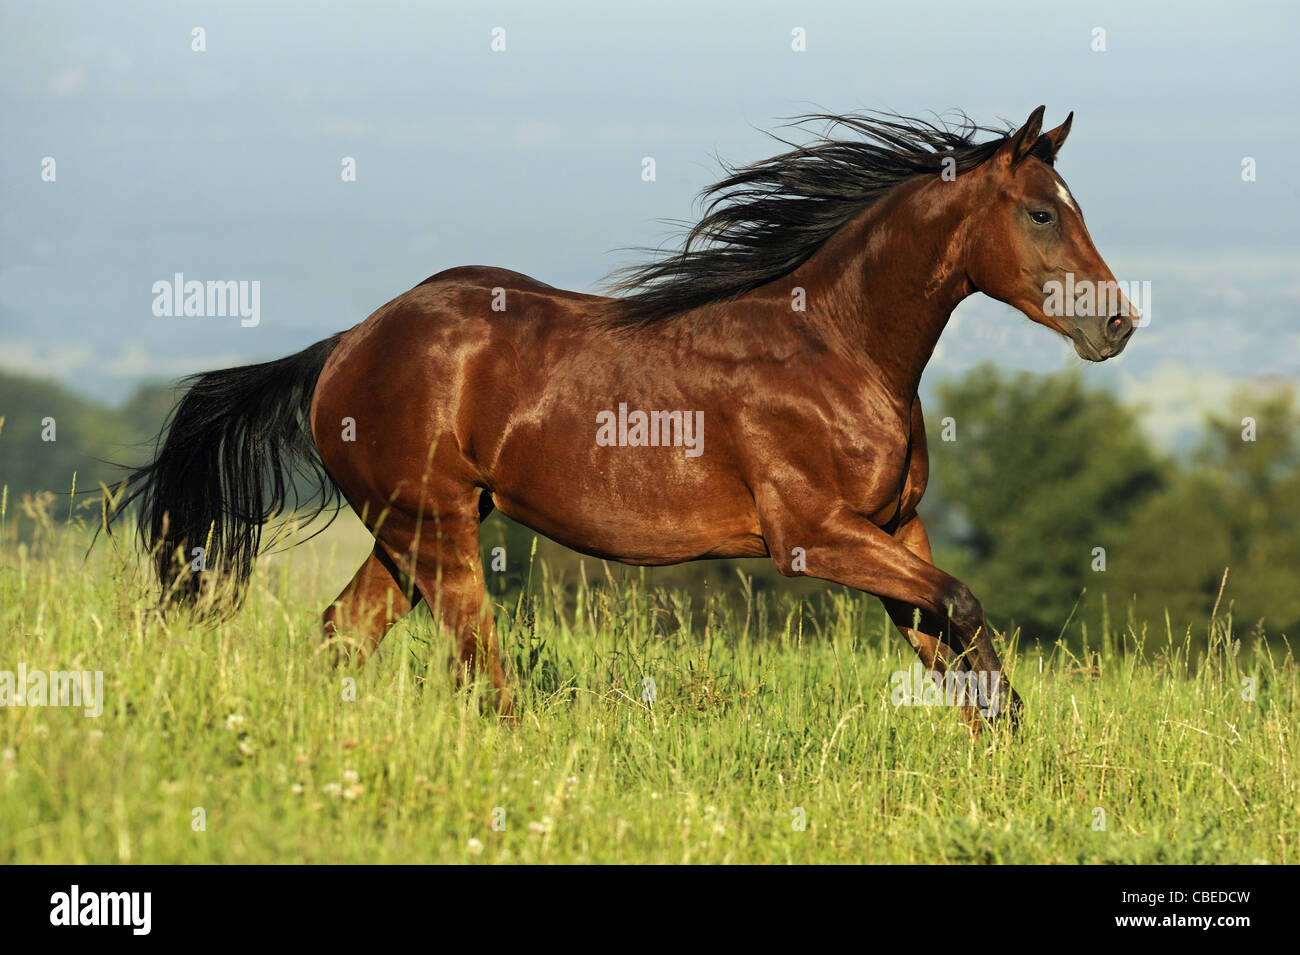 Quarter Horse (Equus ferus caballus). Bay stallion in a gallop on a meadow. - Stock Image